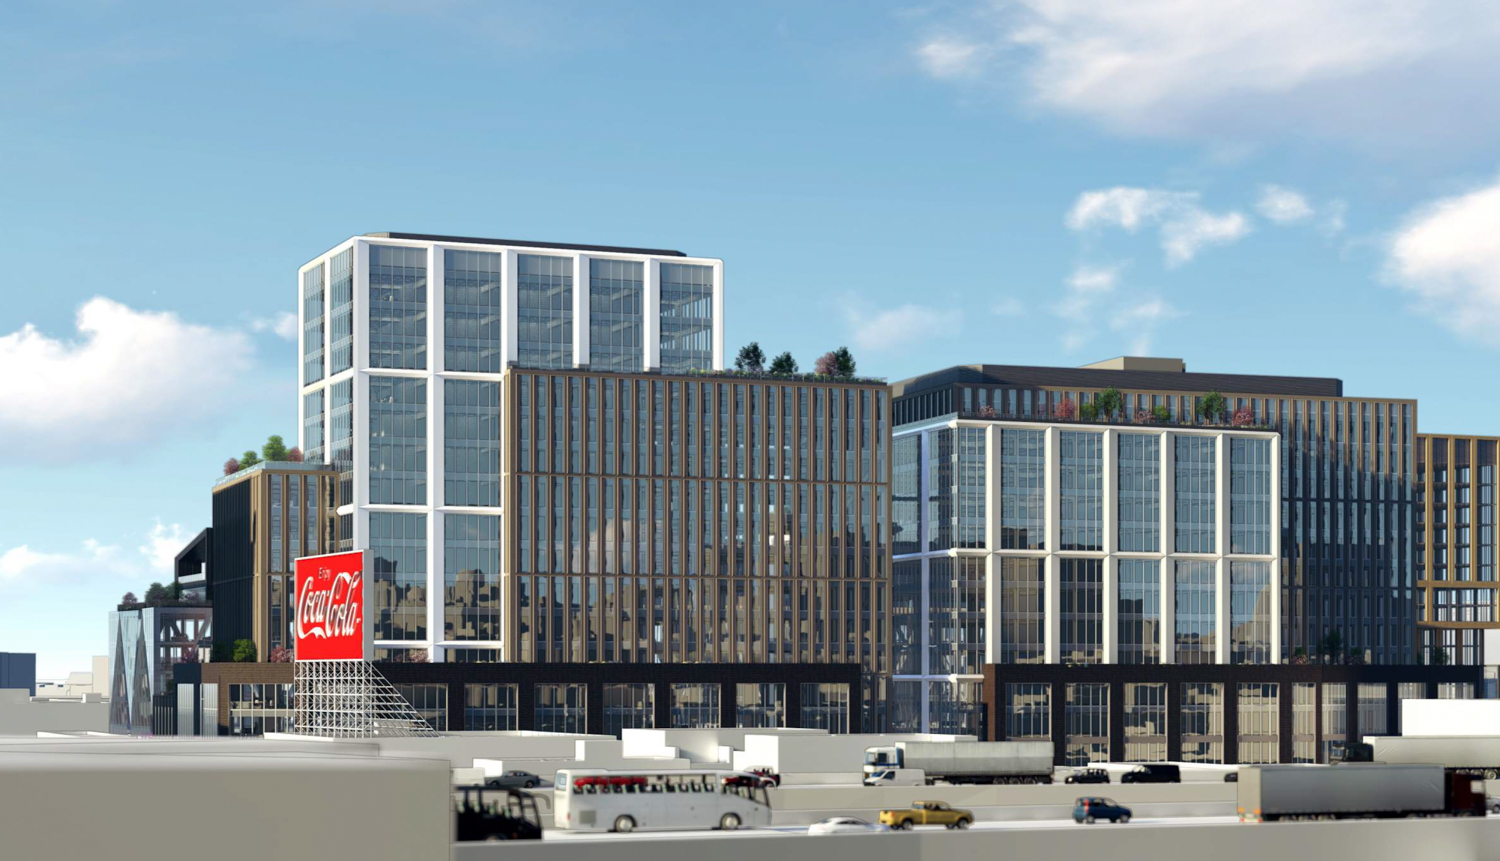 610-698 Brannan Street SF Flower Mart view from I-80, rendering via Adamson Architects and RCH Studios